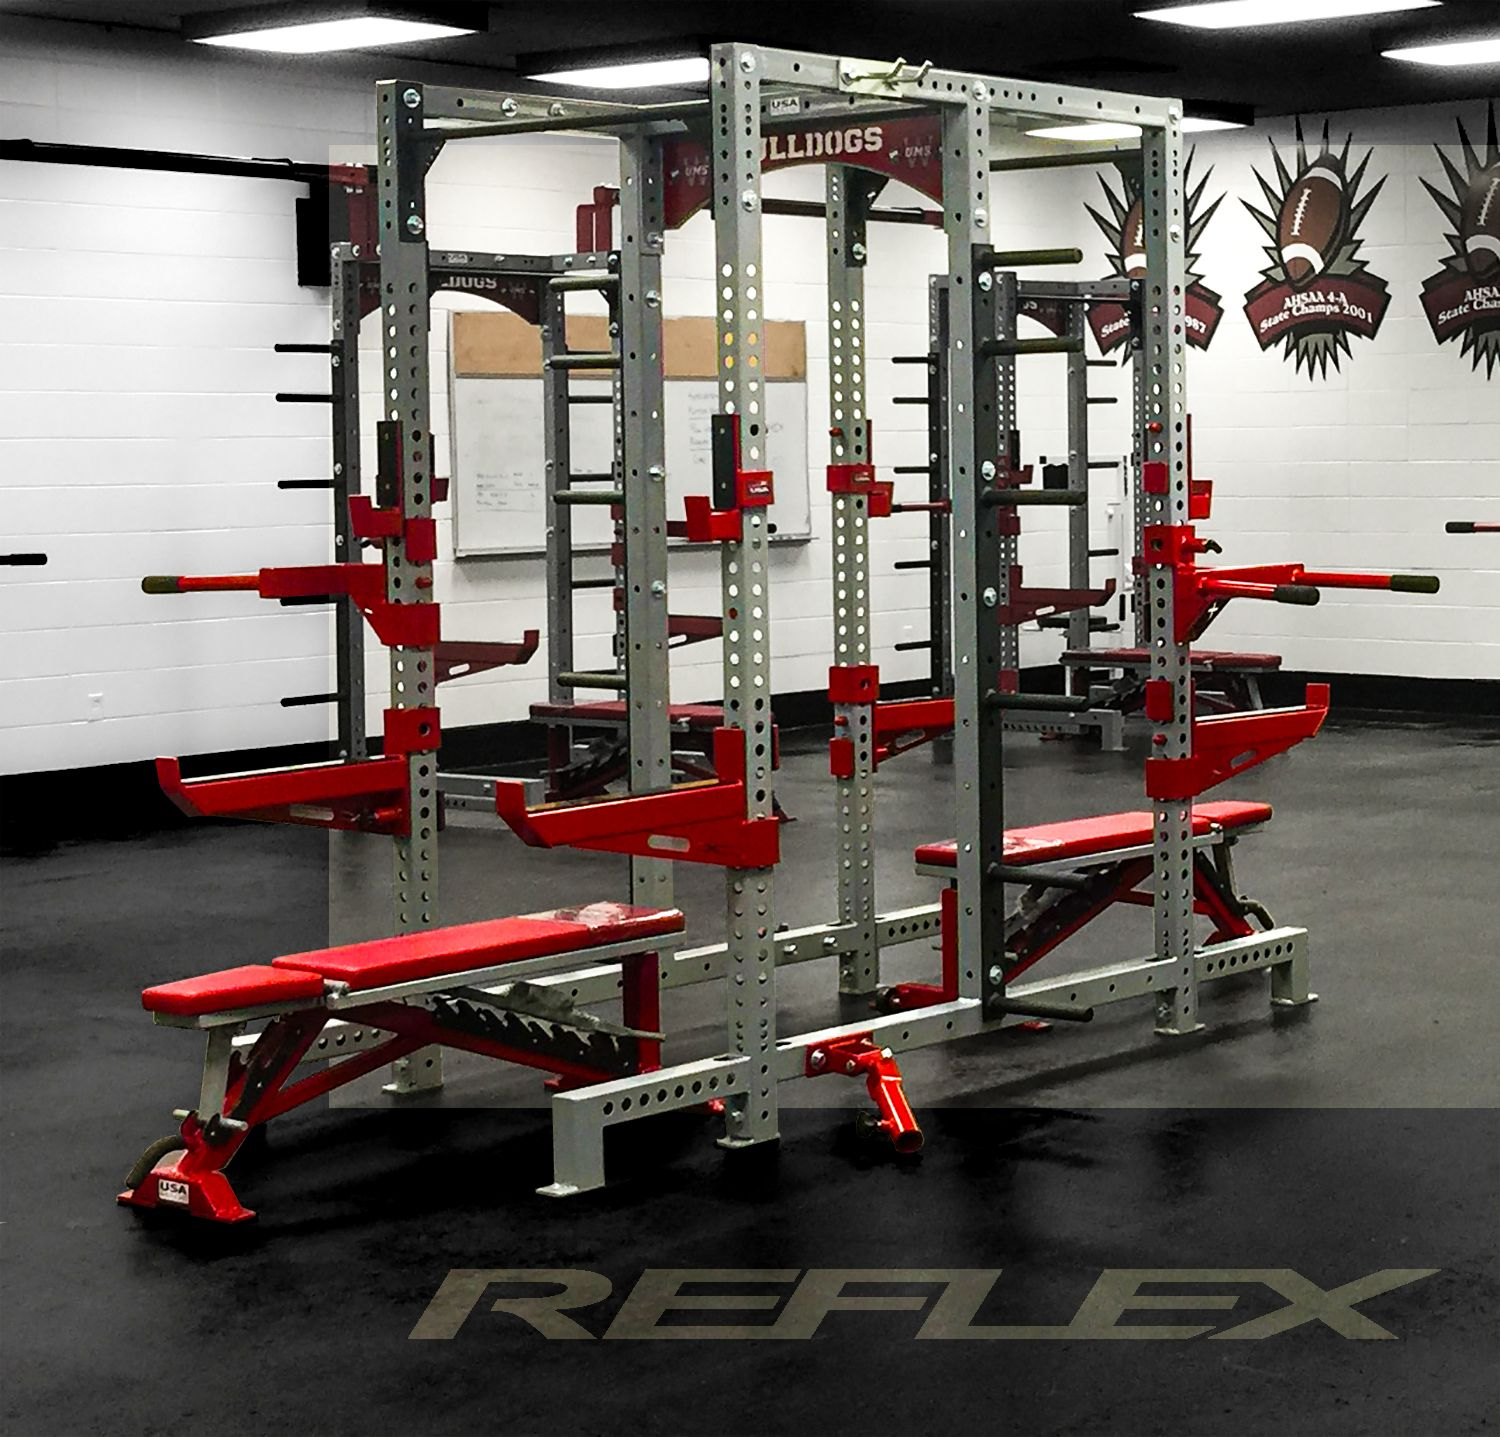 Double rack by reflex crypted molesting chambers garage gym